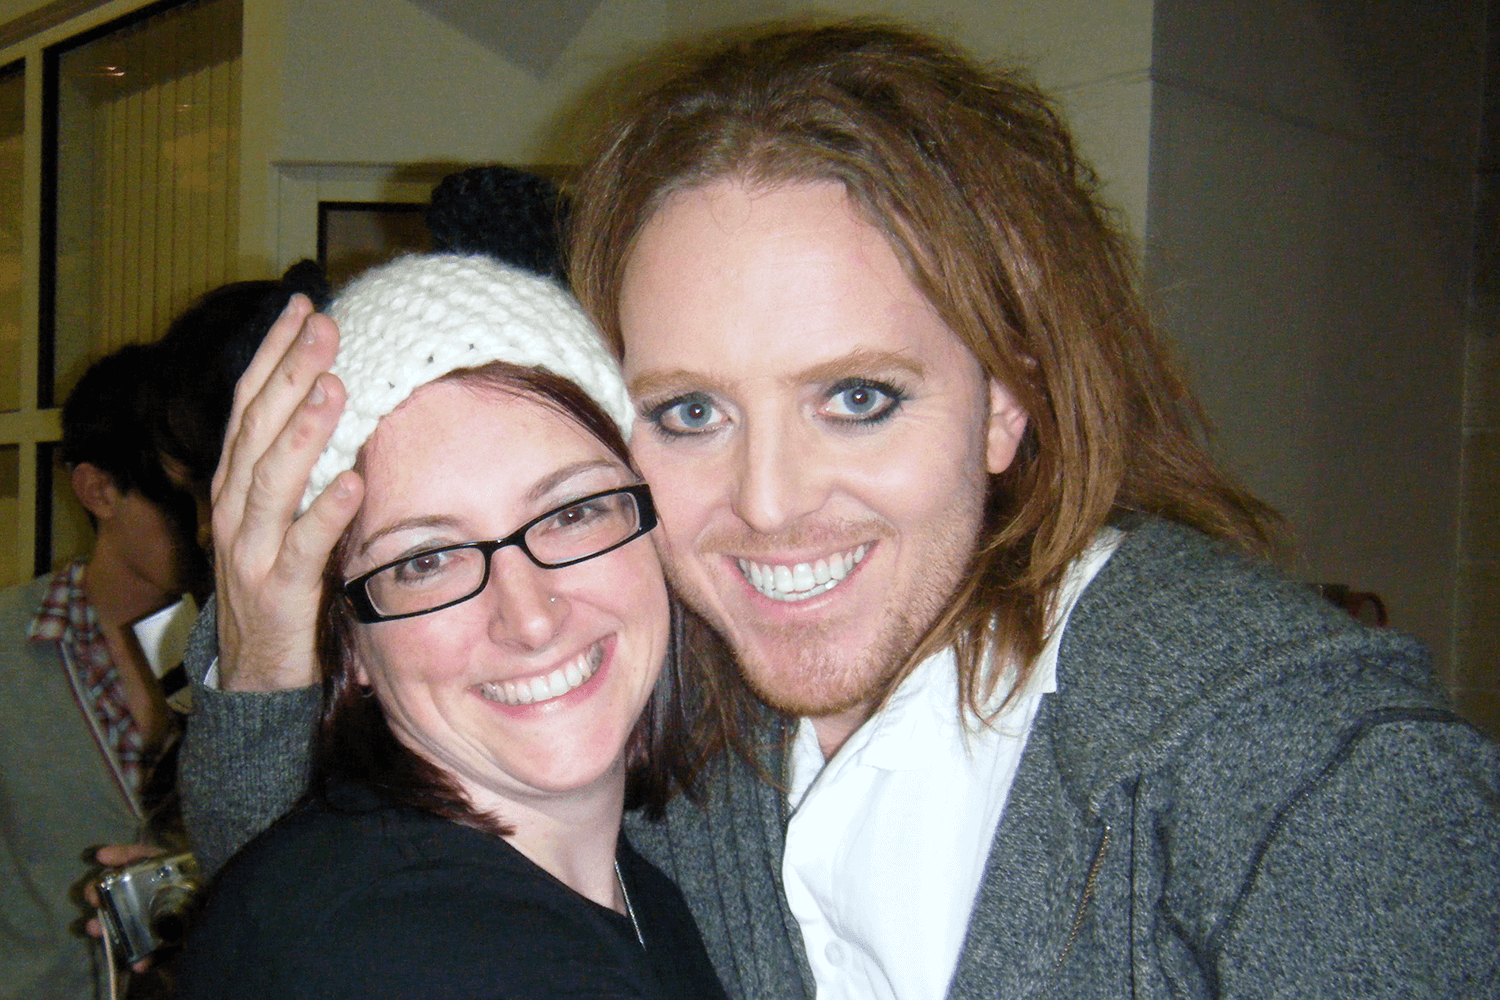 Tim Minchin and me after one of his concerts